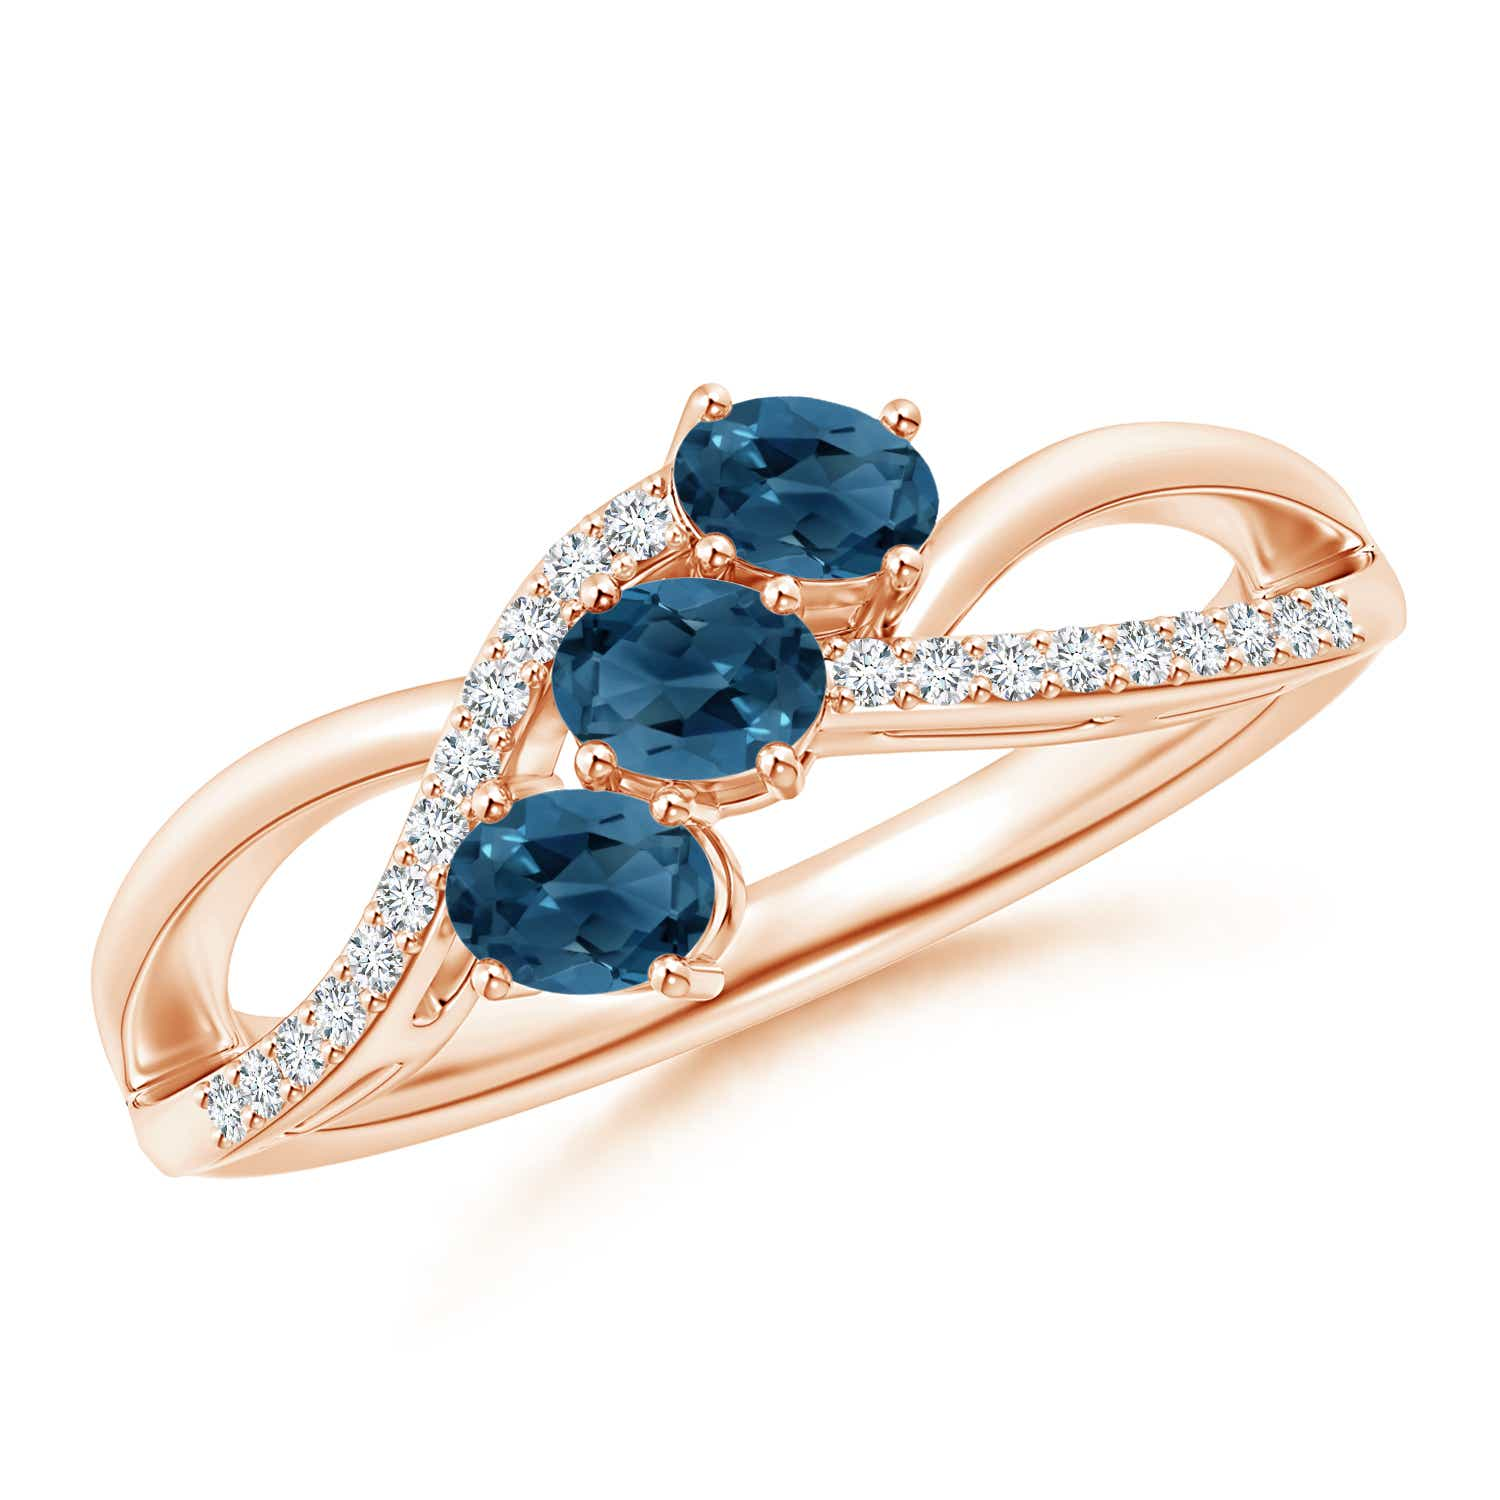 Angara Prong Set London Blue Topaz Three Stone Ring in Yellow Gold 7KZB0e58